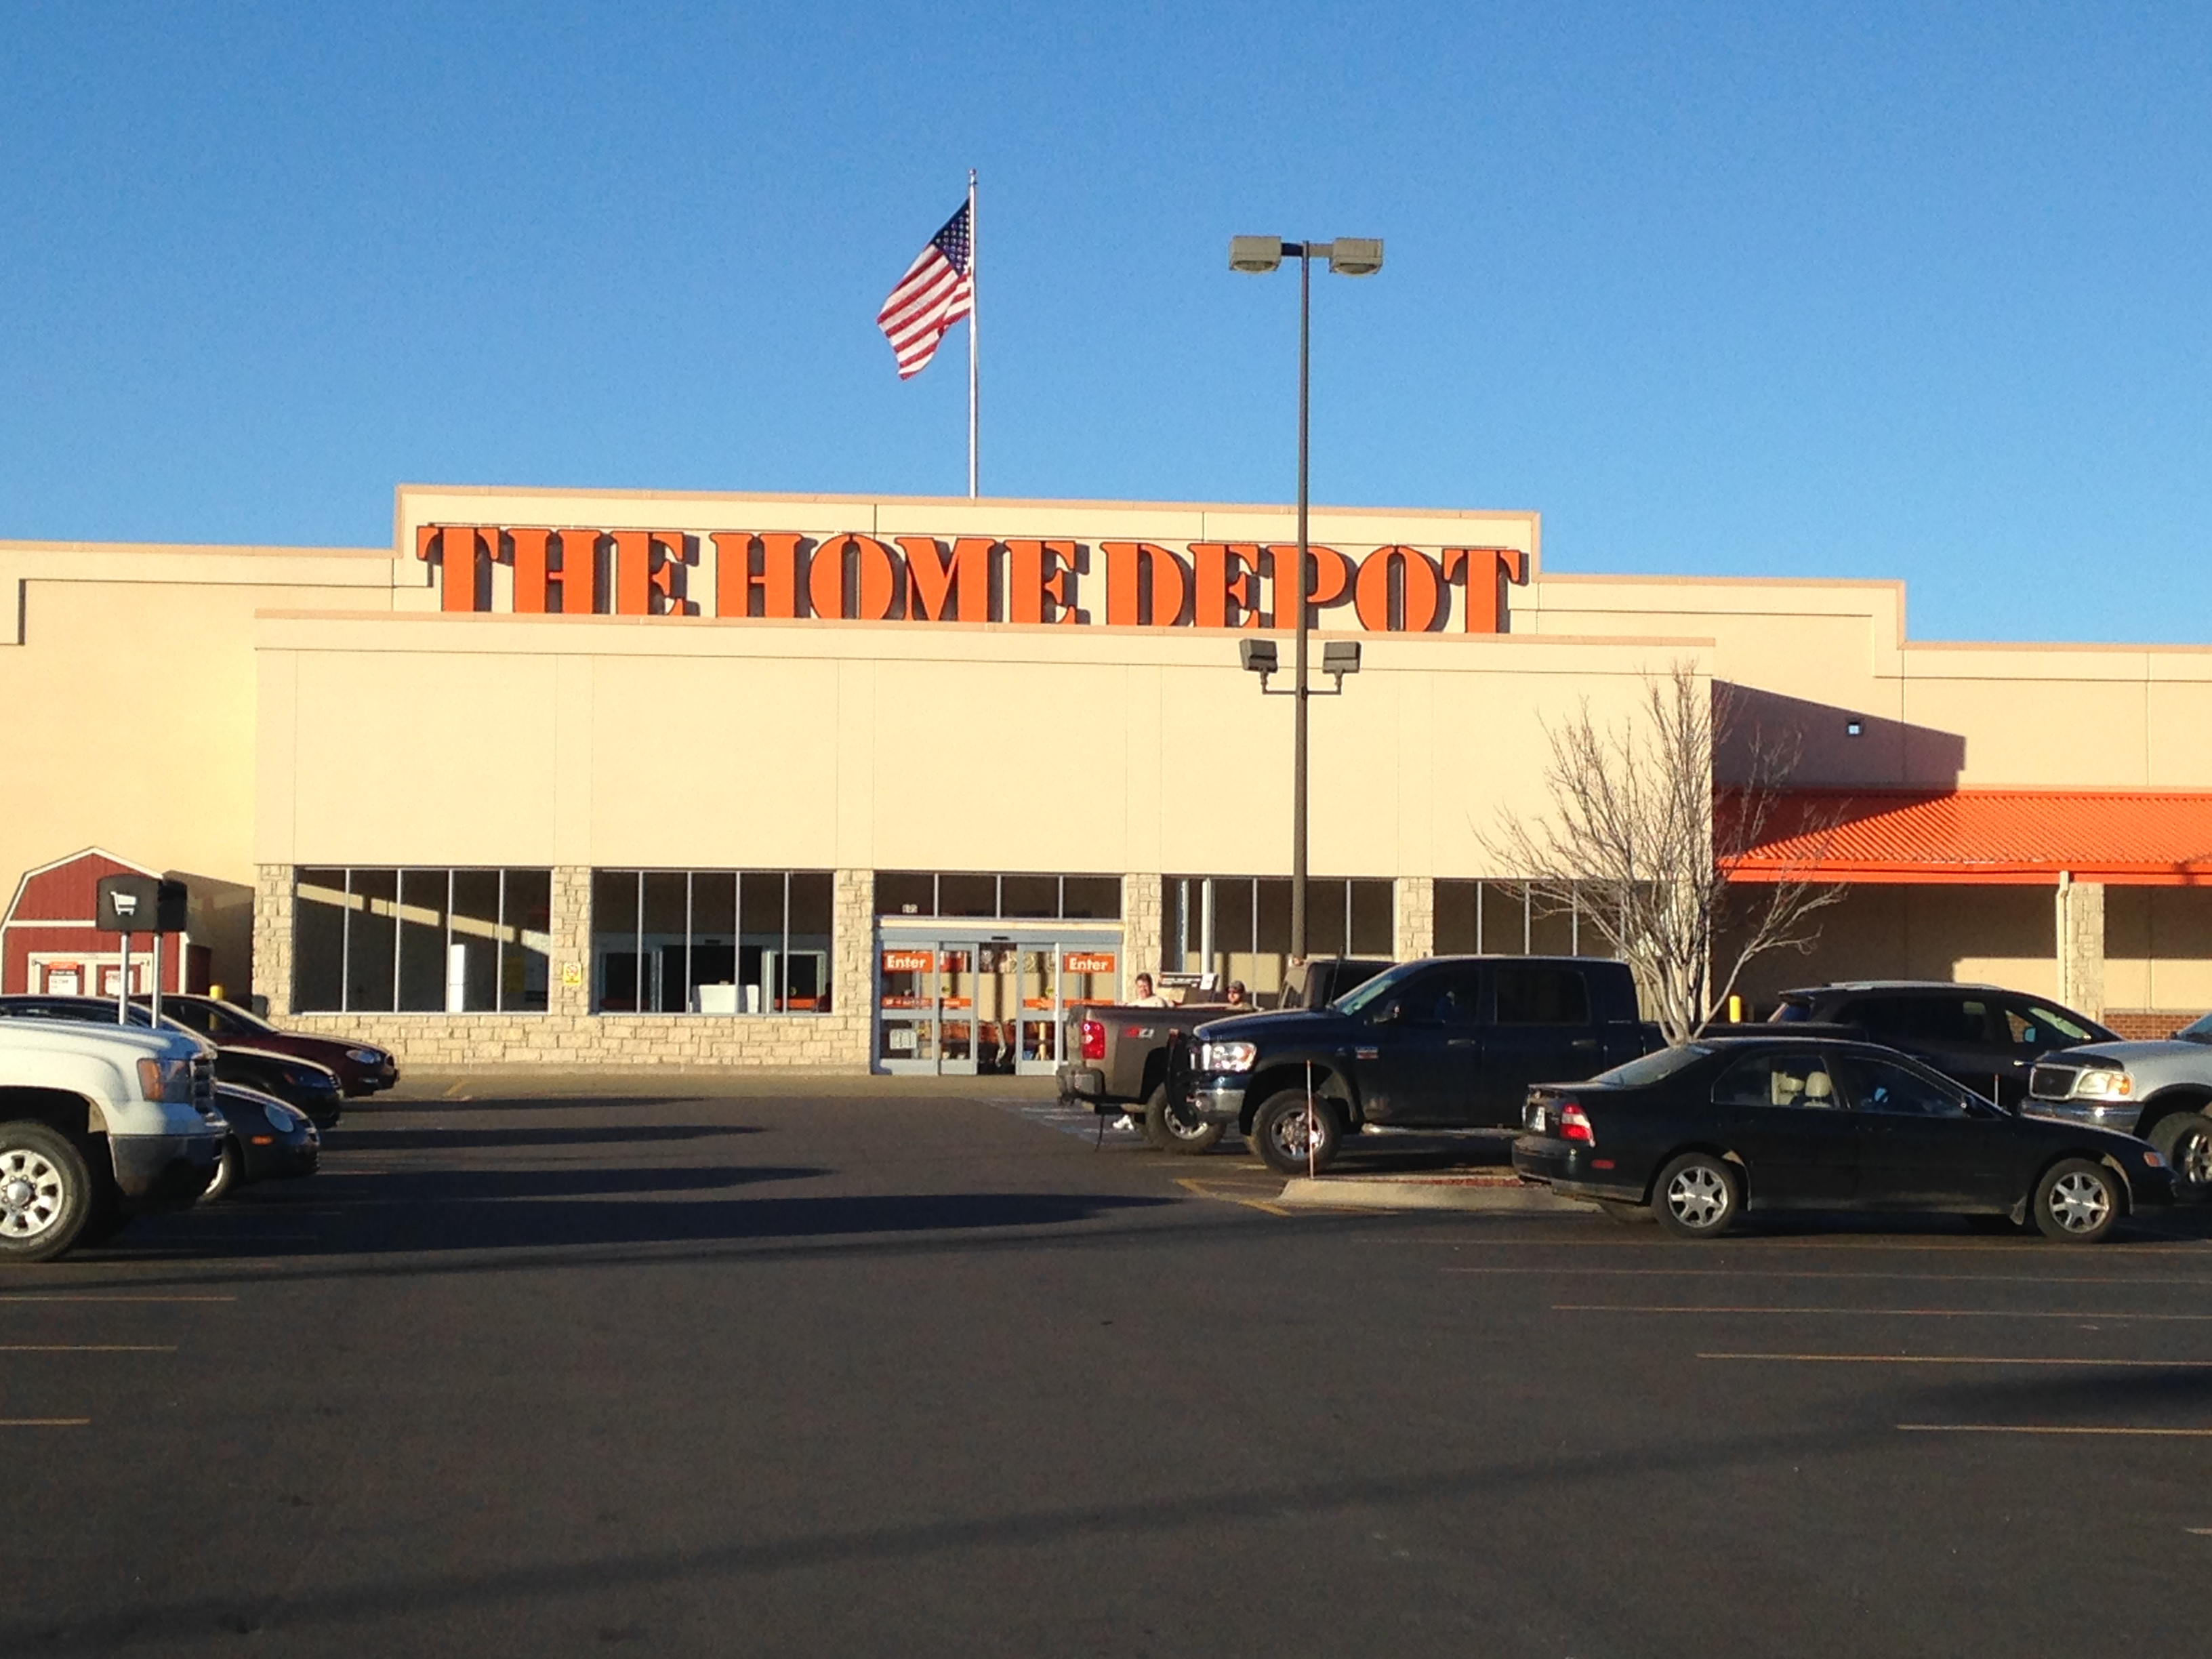 Home Depot Holiday Hours You will notice the customer service department operates on a strict schedule in order to provide optimal customer service. The customer service department observes several holidays and holds special events, but closes for one holiday.